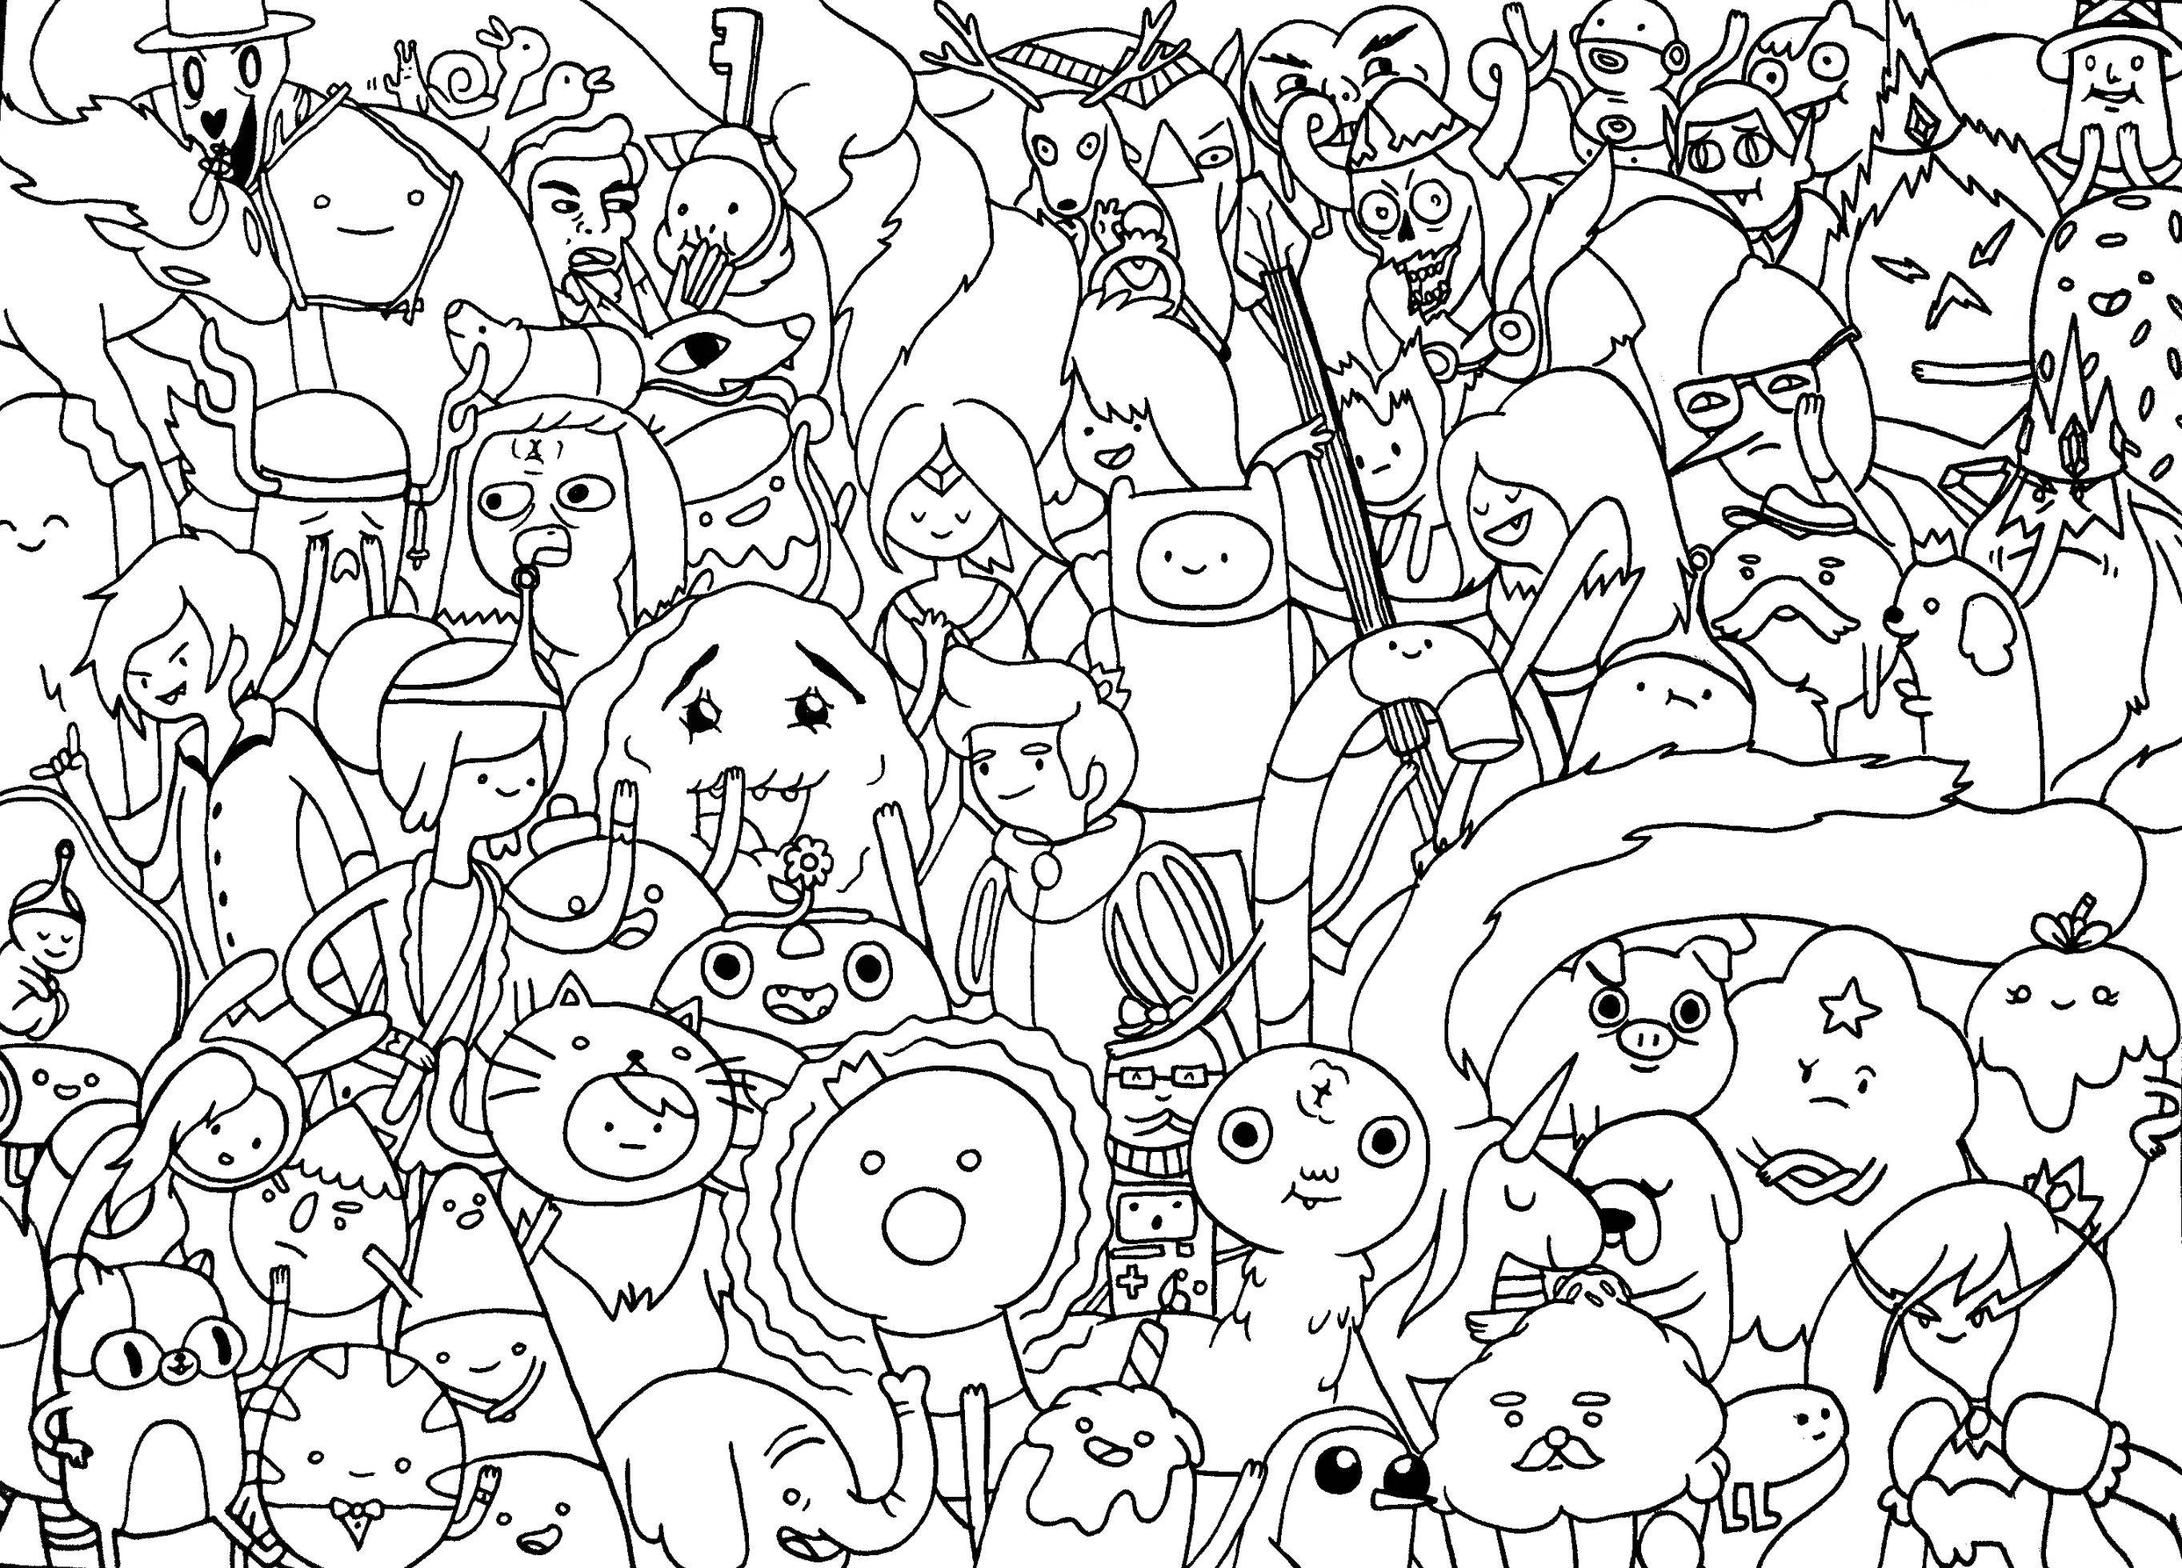 adventure time coloring adventure time coloring page coloring pages of epicness coloring adventure time